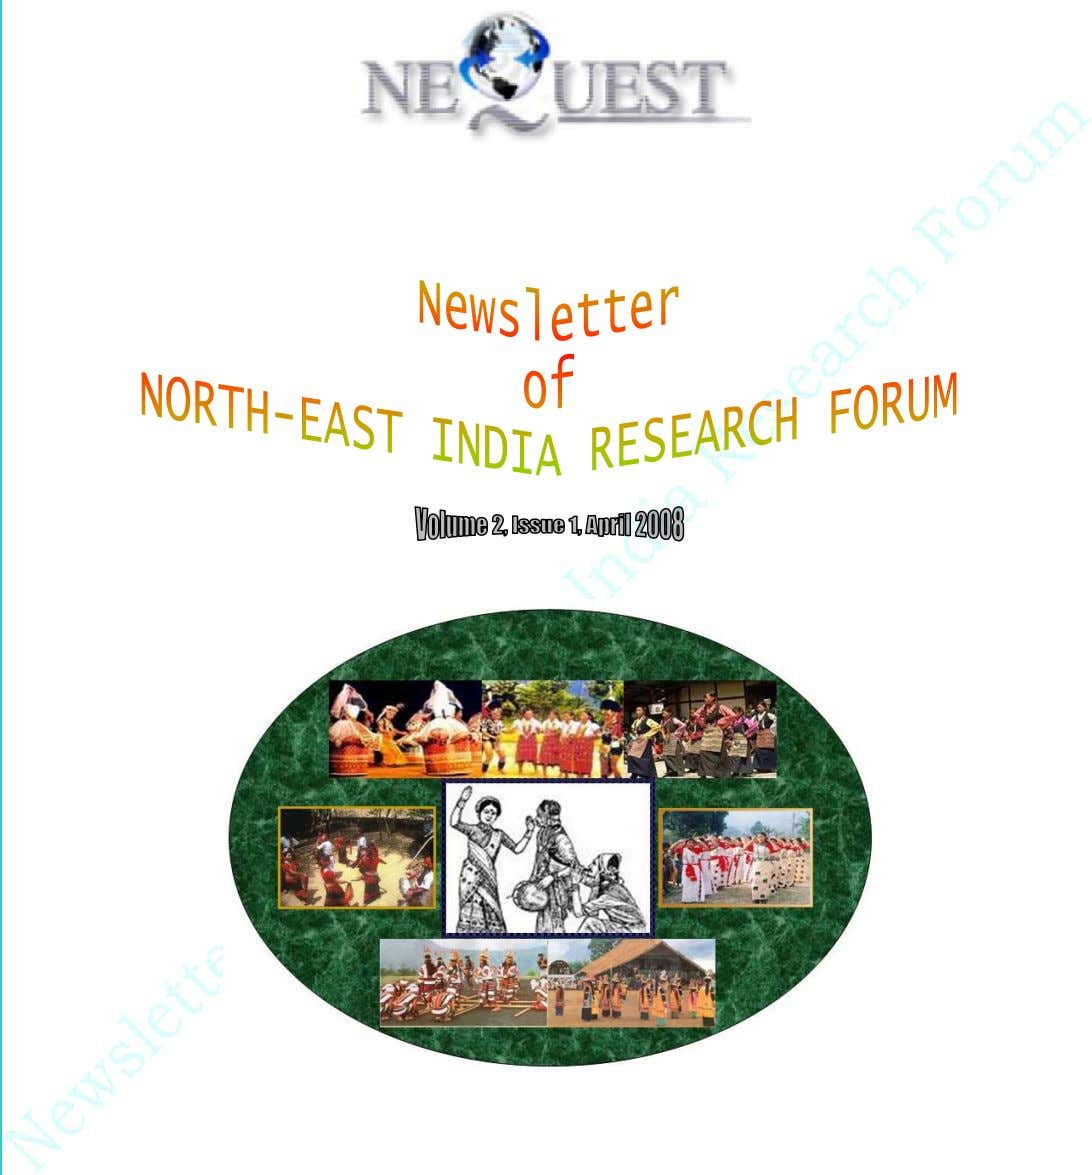 Newsletter of North East India Research Forum http://tech.groups. y ahoo.com/ g rou p /northeast_india_research/